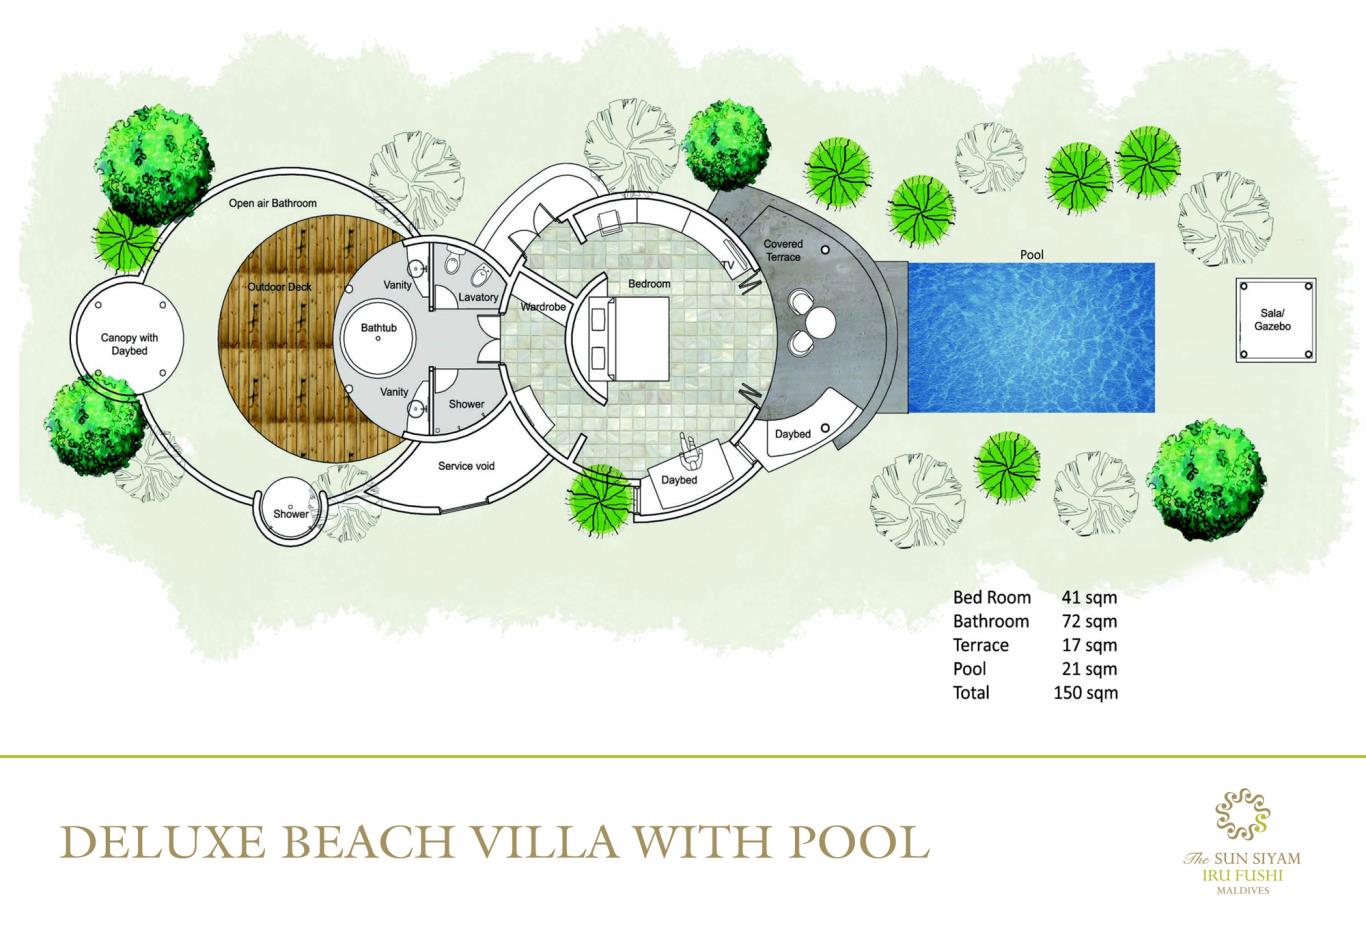 Deluxe Beach Villa With Pool Floorplan